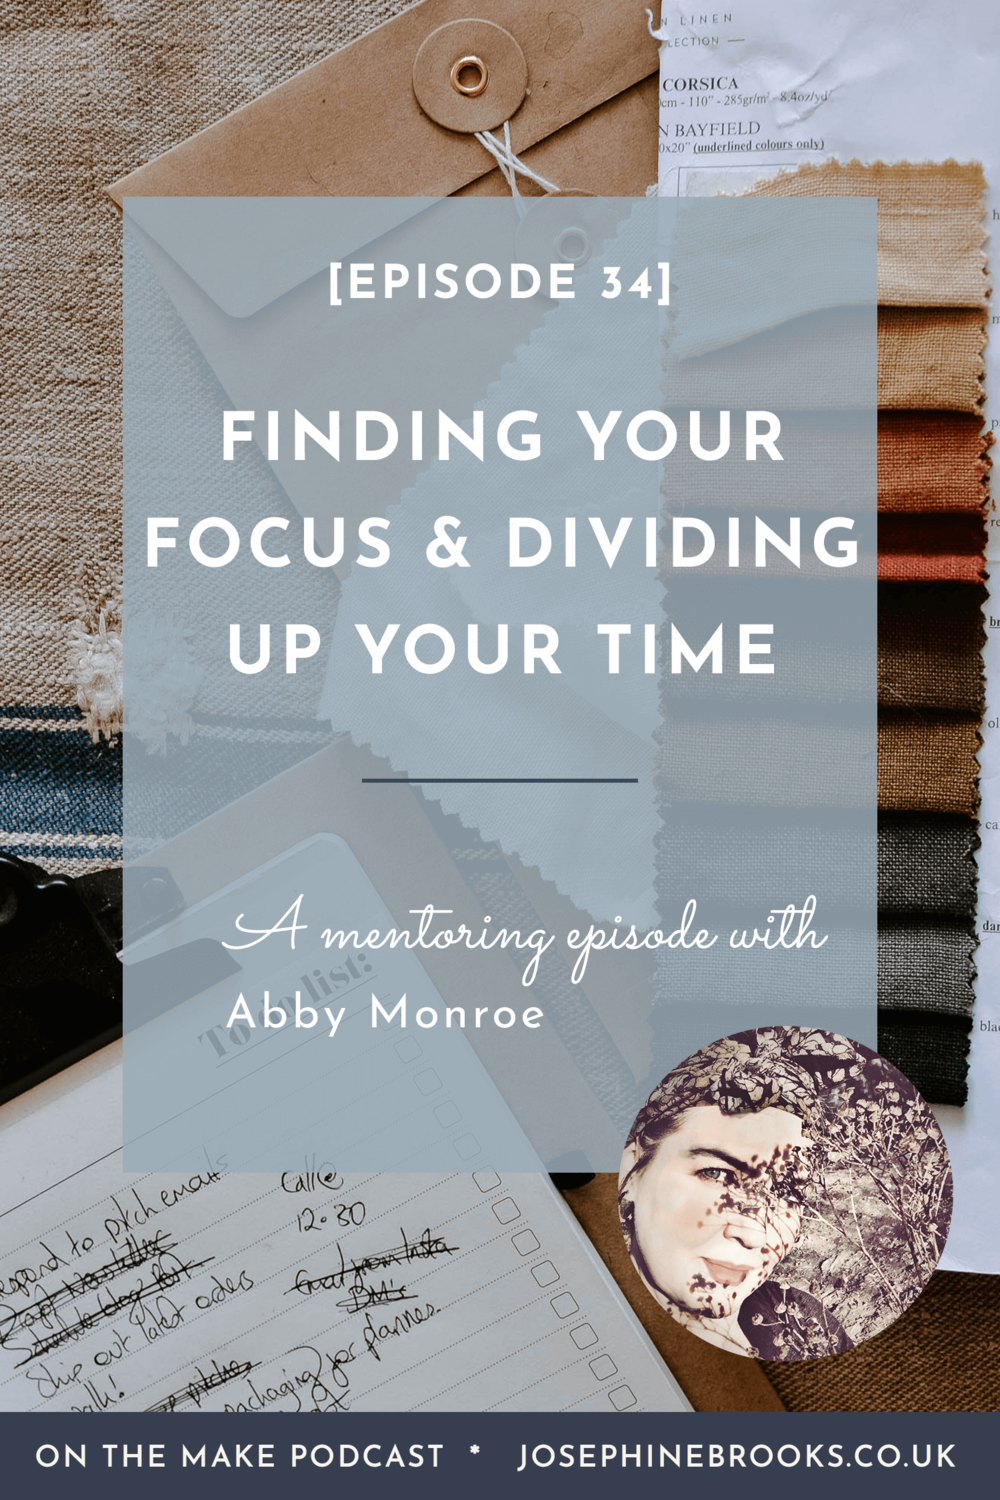 Finding your focus and dividing up your time a mentoring episode with Abby Monroe - Episode 34 of On The Make Podcast hosted by Josephine Brooks